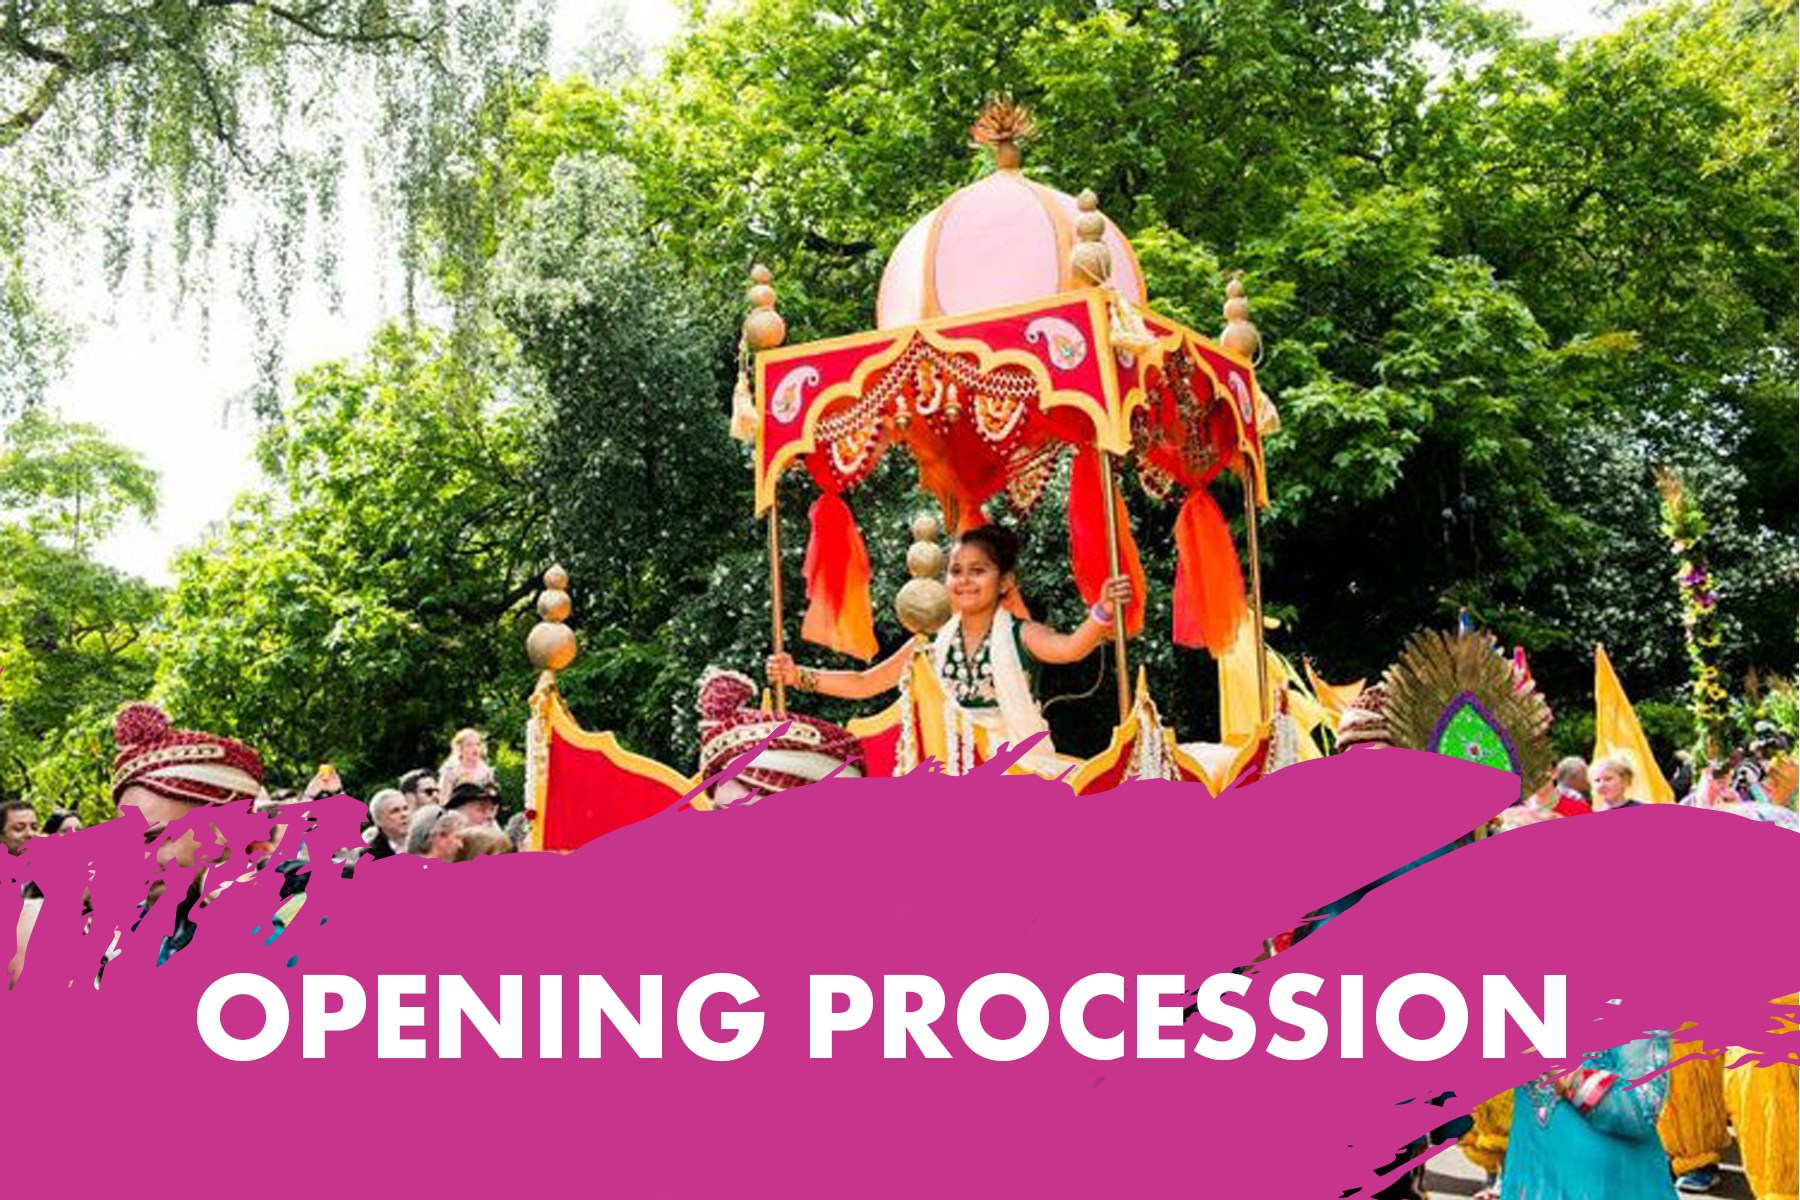 opening-procession_LARGE.jpg